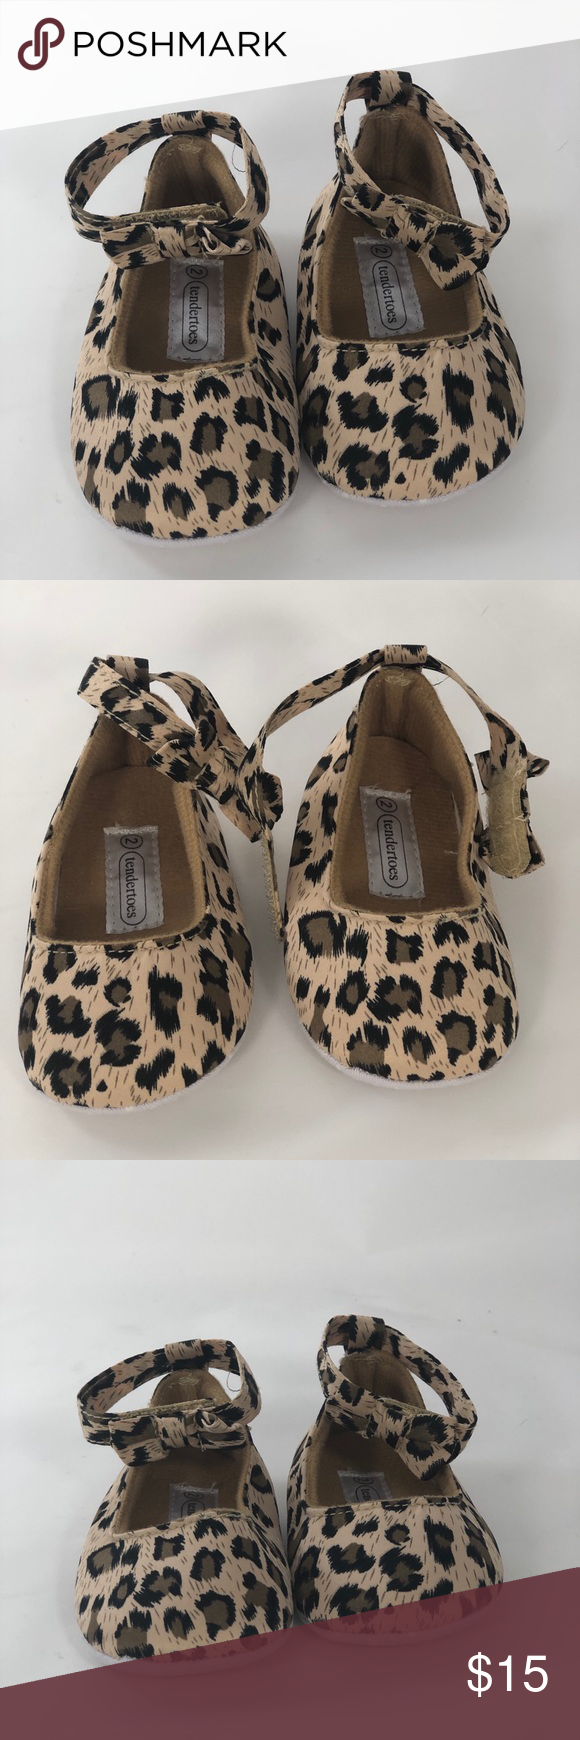 Photo of Newborn shoes Leopard print size 2 🤍New Boutique baby girl shoes 🤍Leopard…